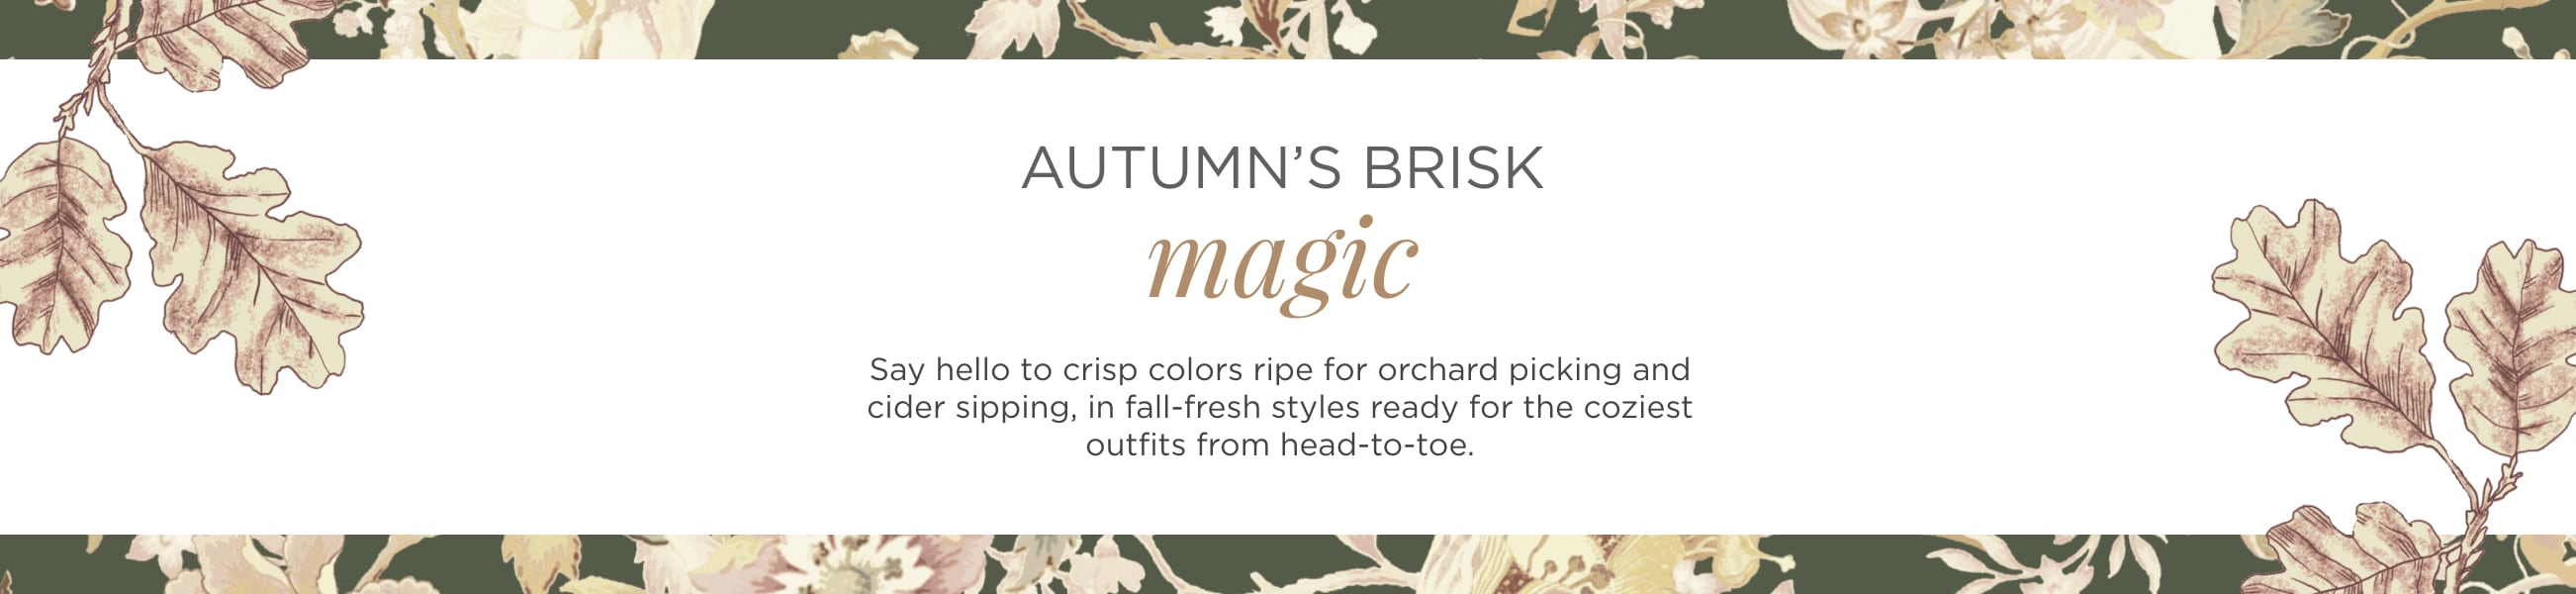 """Autumn's Brisk Magic. Say """"Hello"""" to crisp colors ripe for orchard picking and cider sipping, in fall-fresh styles, ready for the coziest outfits from head-to-toe."""